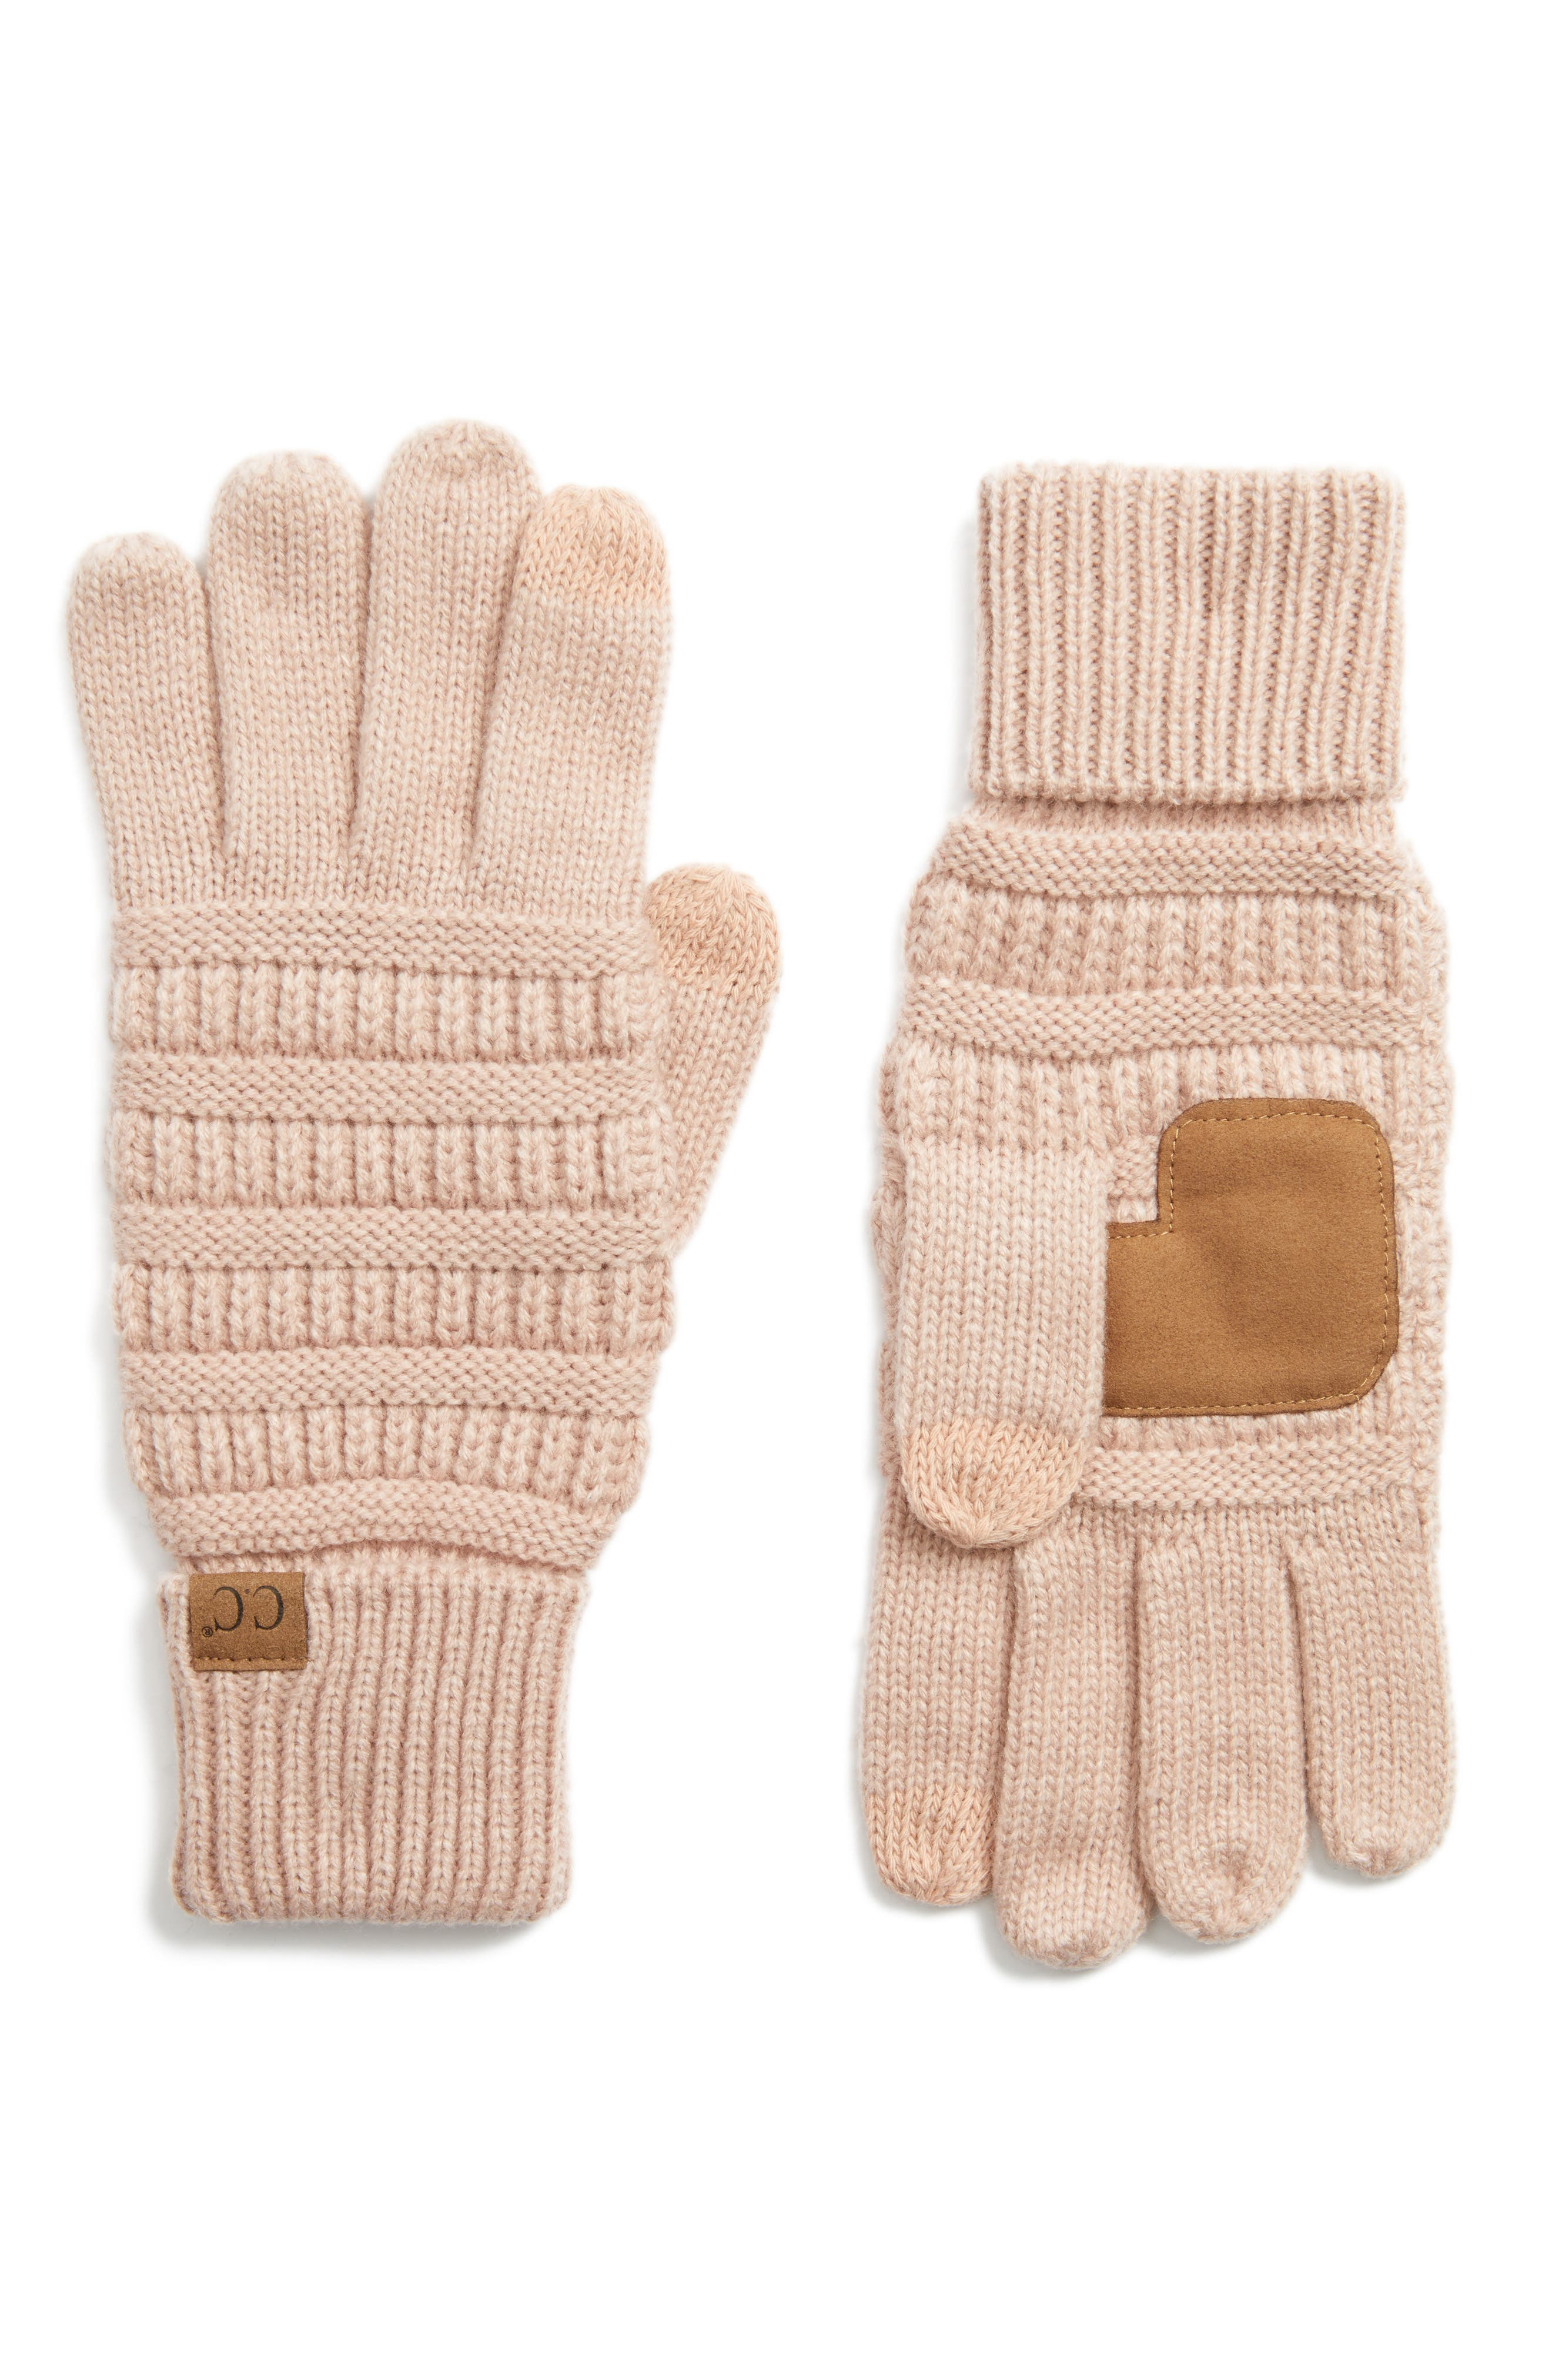 Main Image - CC Rib Knit Tech Gloves